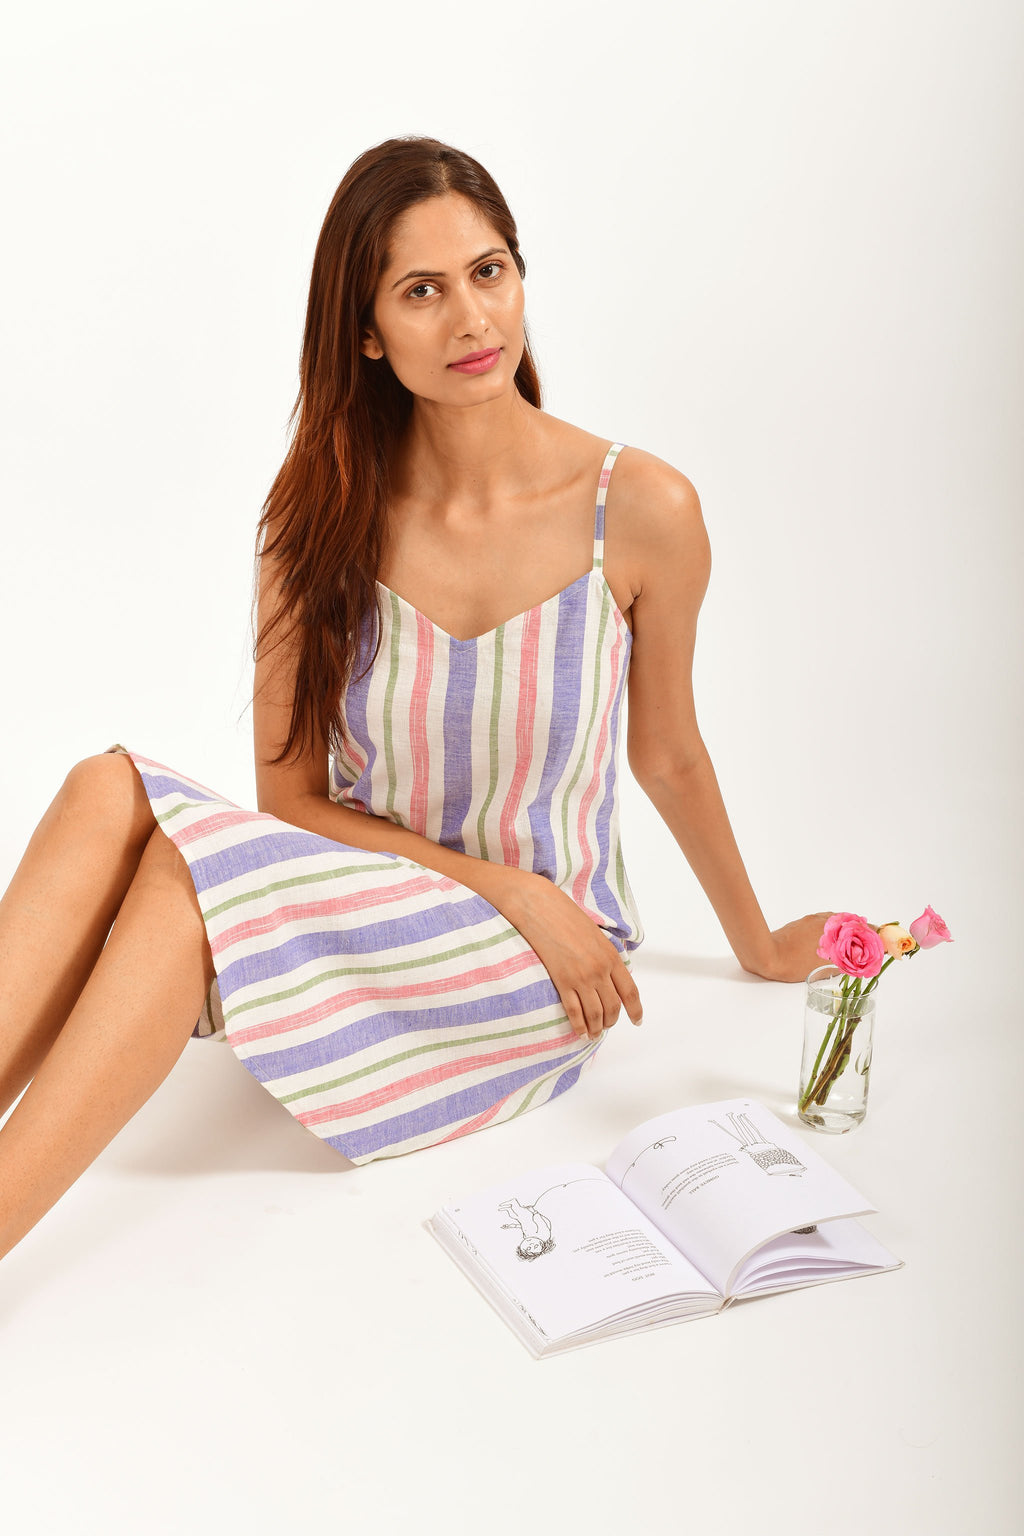 Stylized pose of an Indian female womenswear fashion model in an mutli colored striped handspun and handwoven khadi cotton spaghetti dress by Cotton Rack sitting on the floor and reading A Light In The Attic by Shel Silverstein.